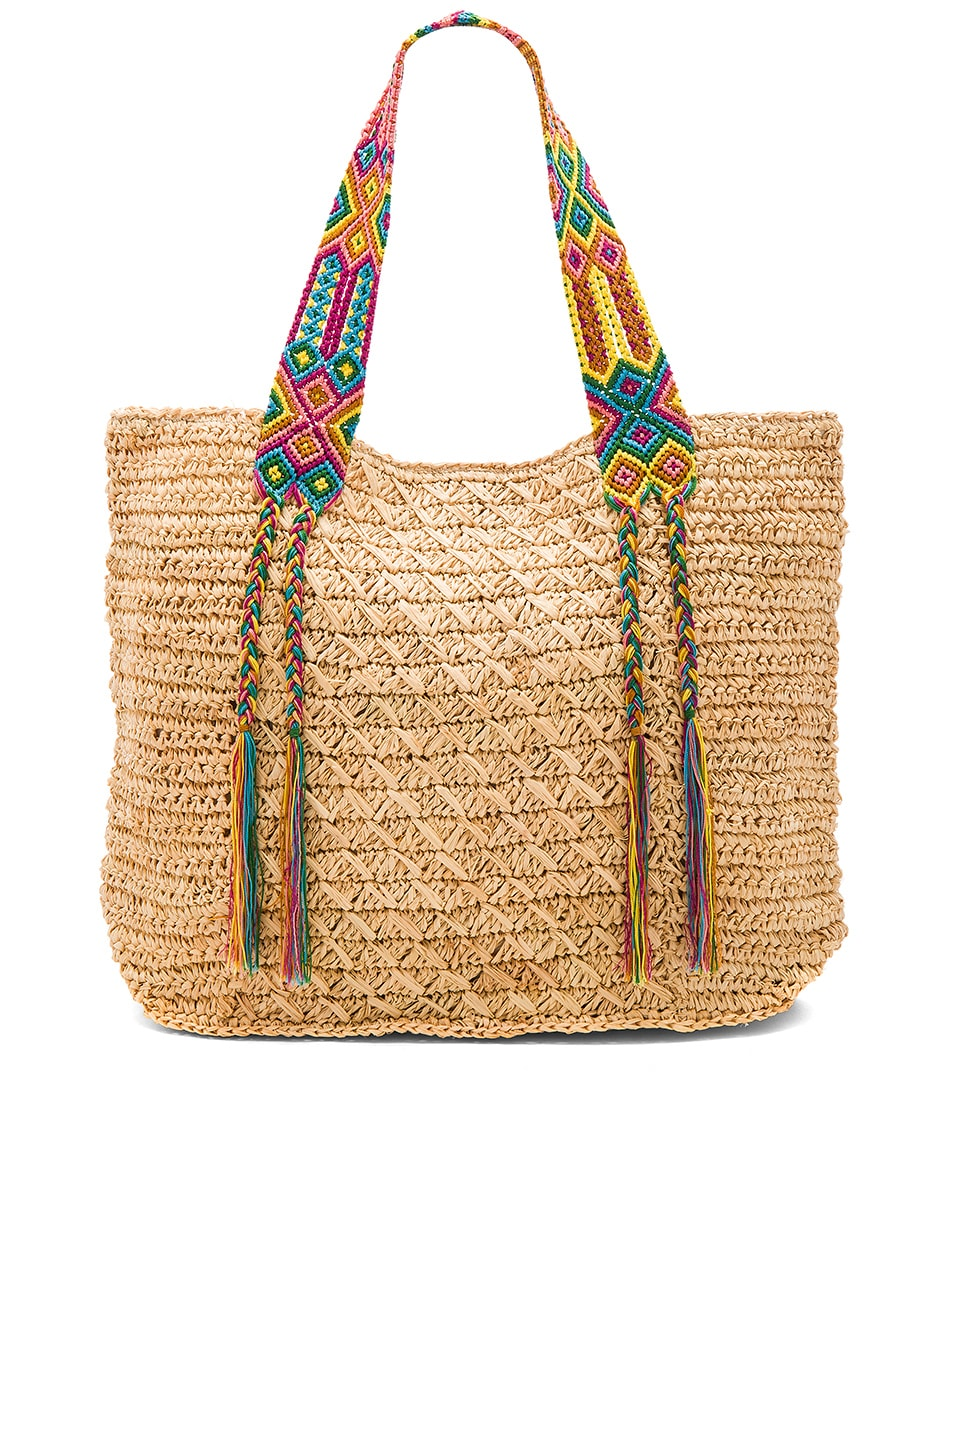 Aliso Tote by Florabella